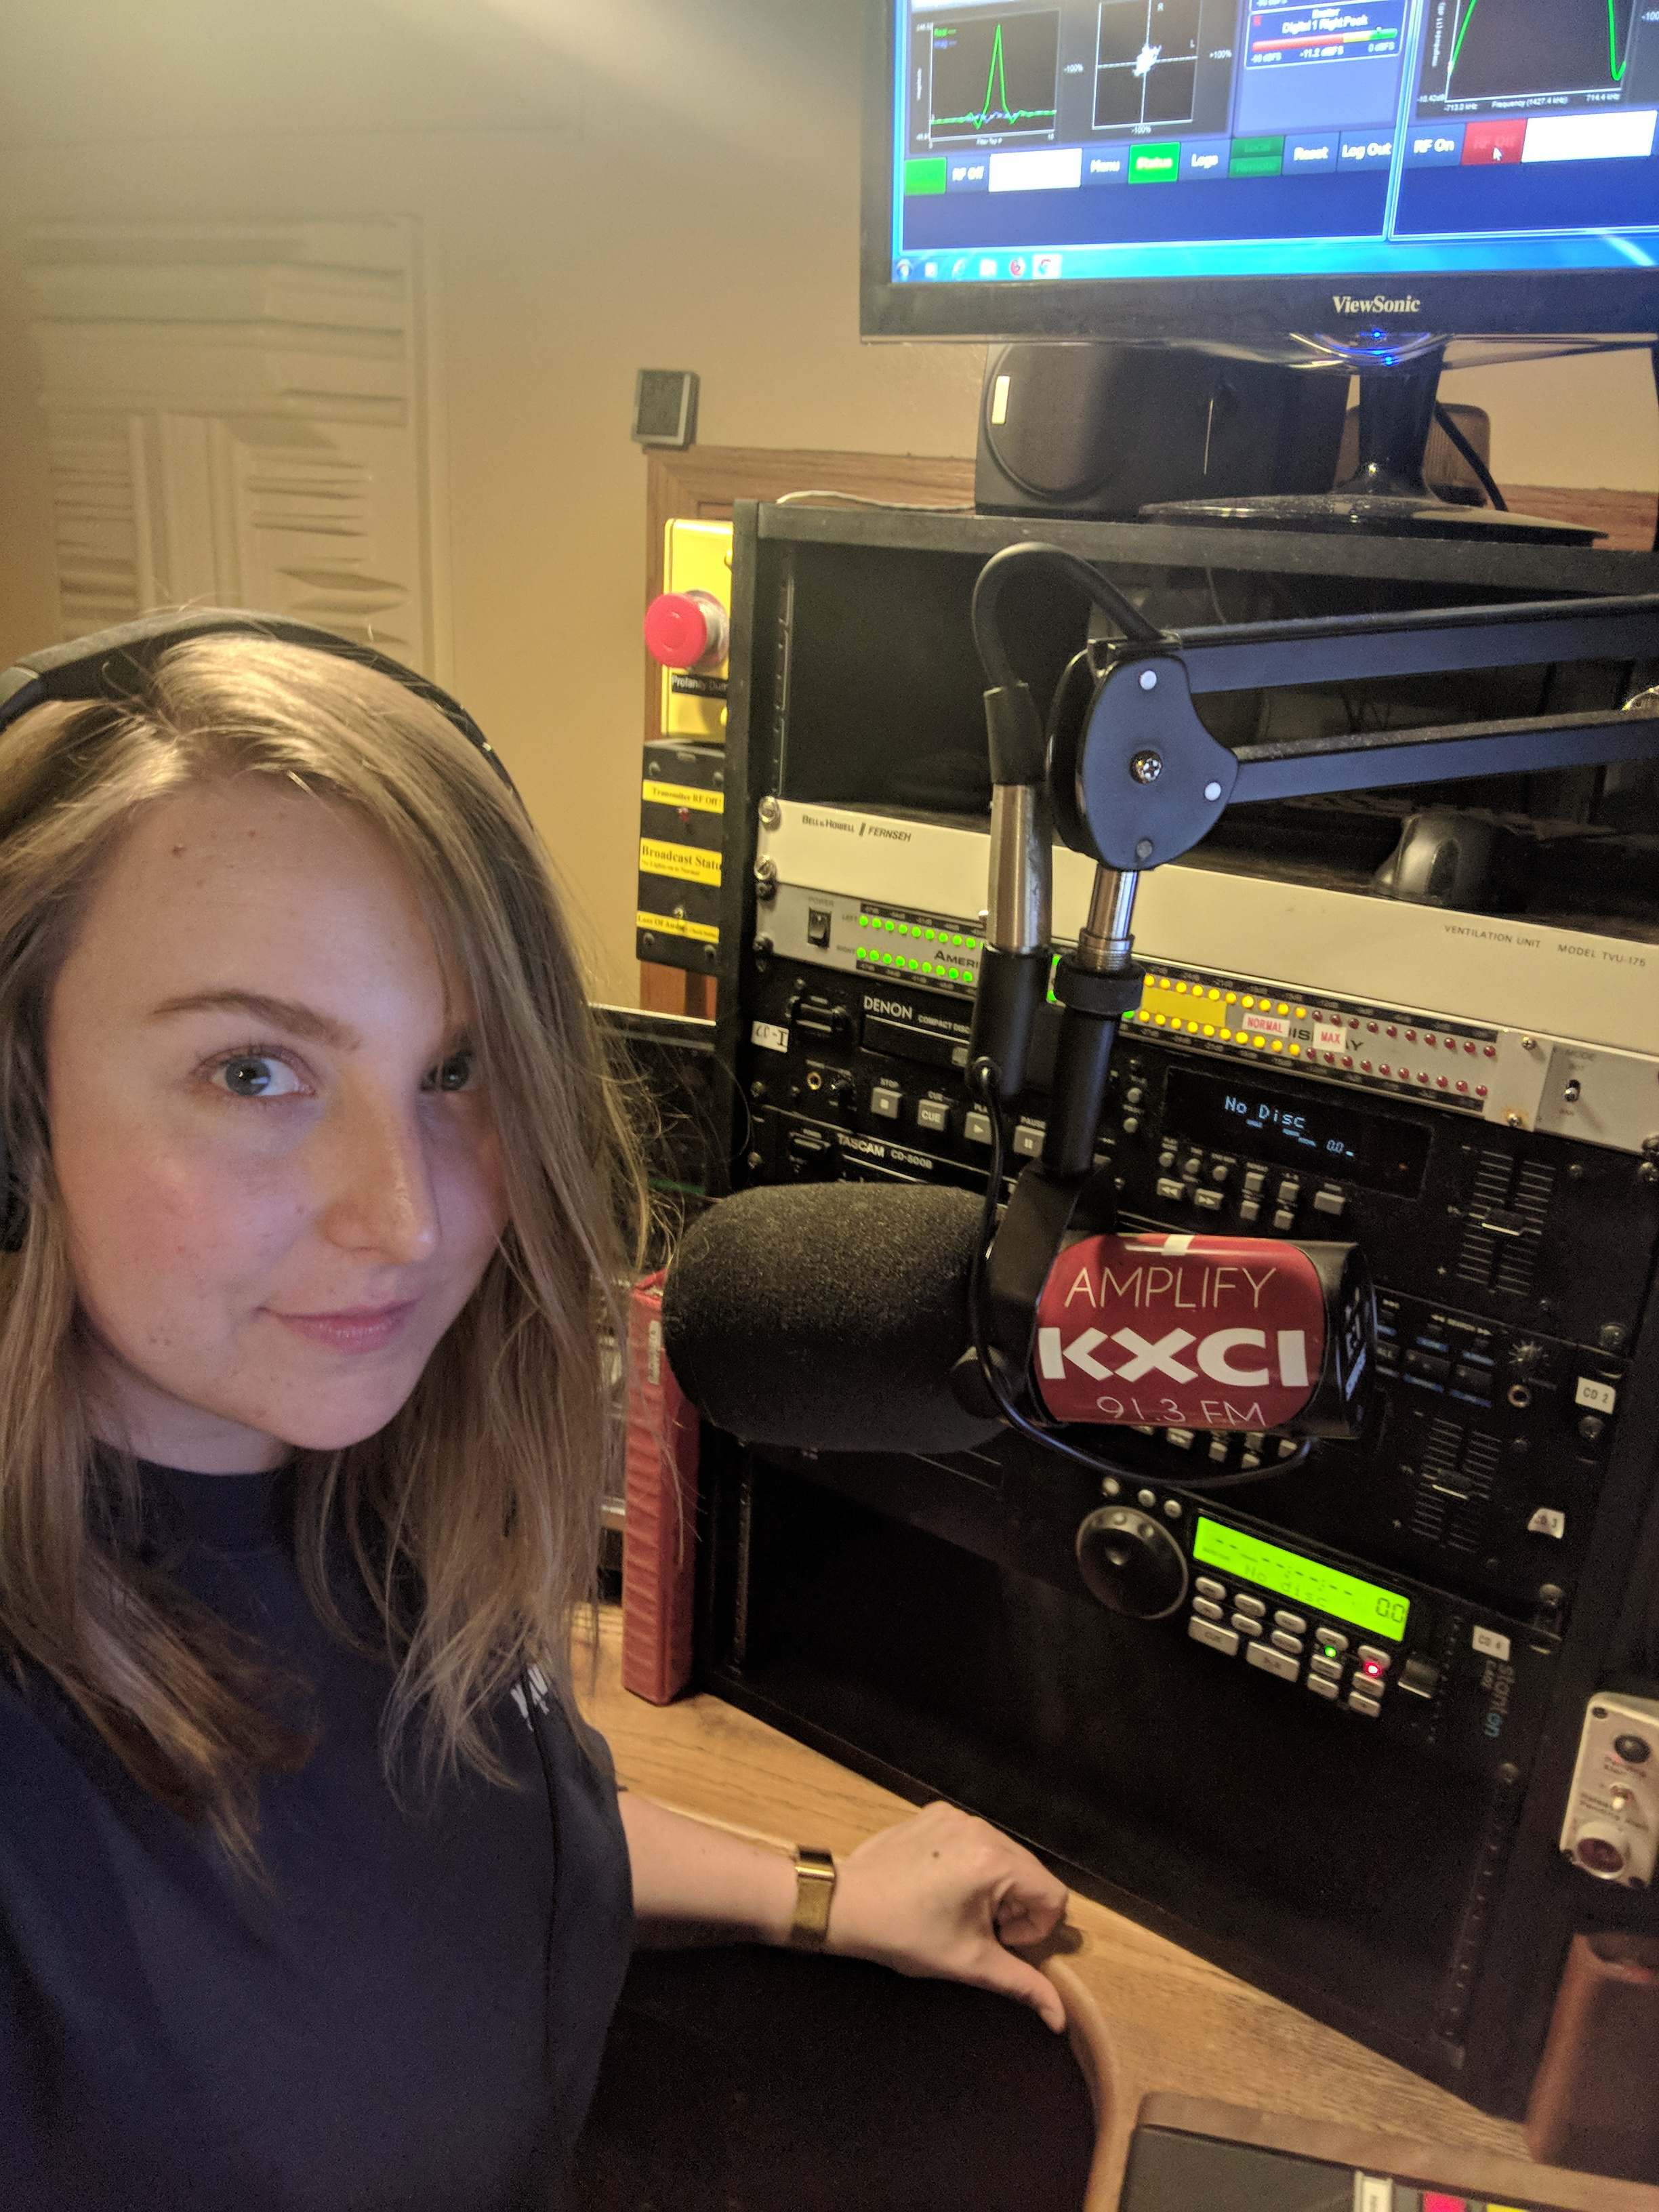 The 3am DJ shift at 91.3 KXCI